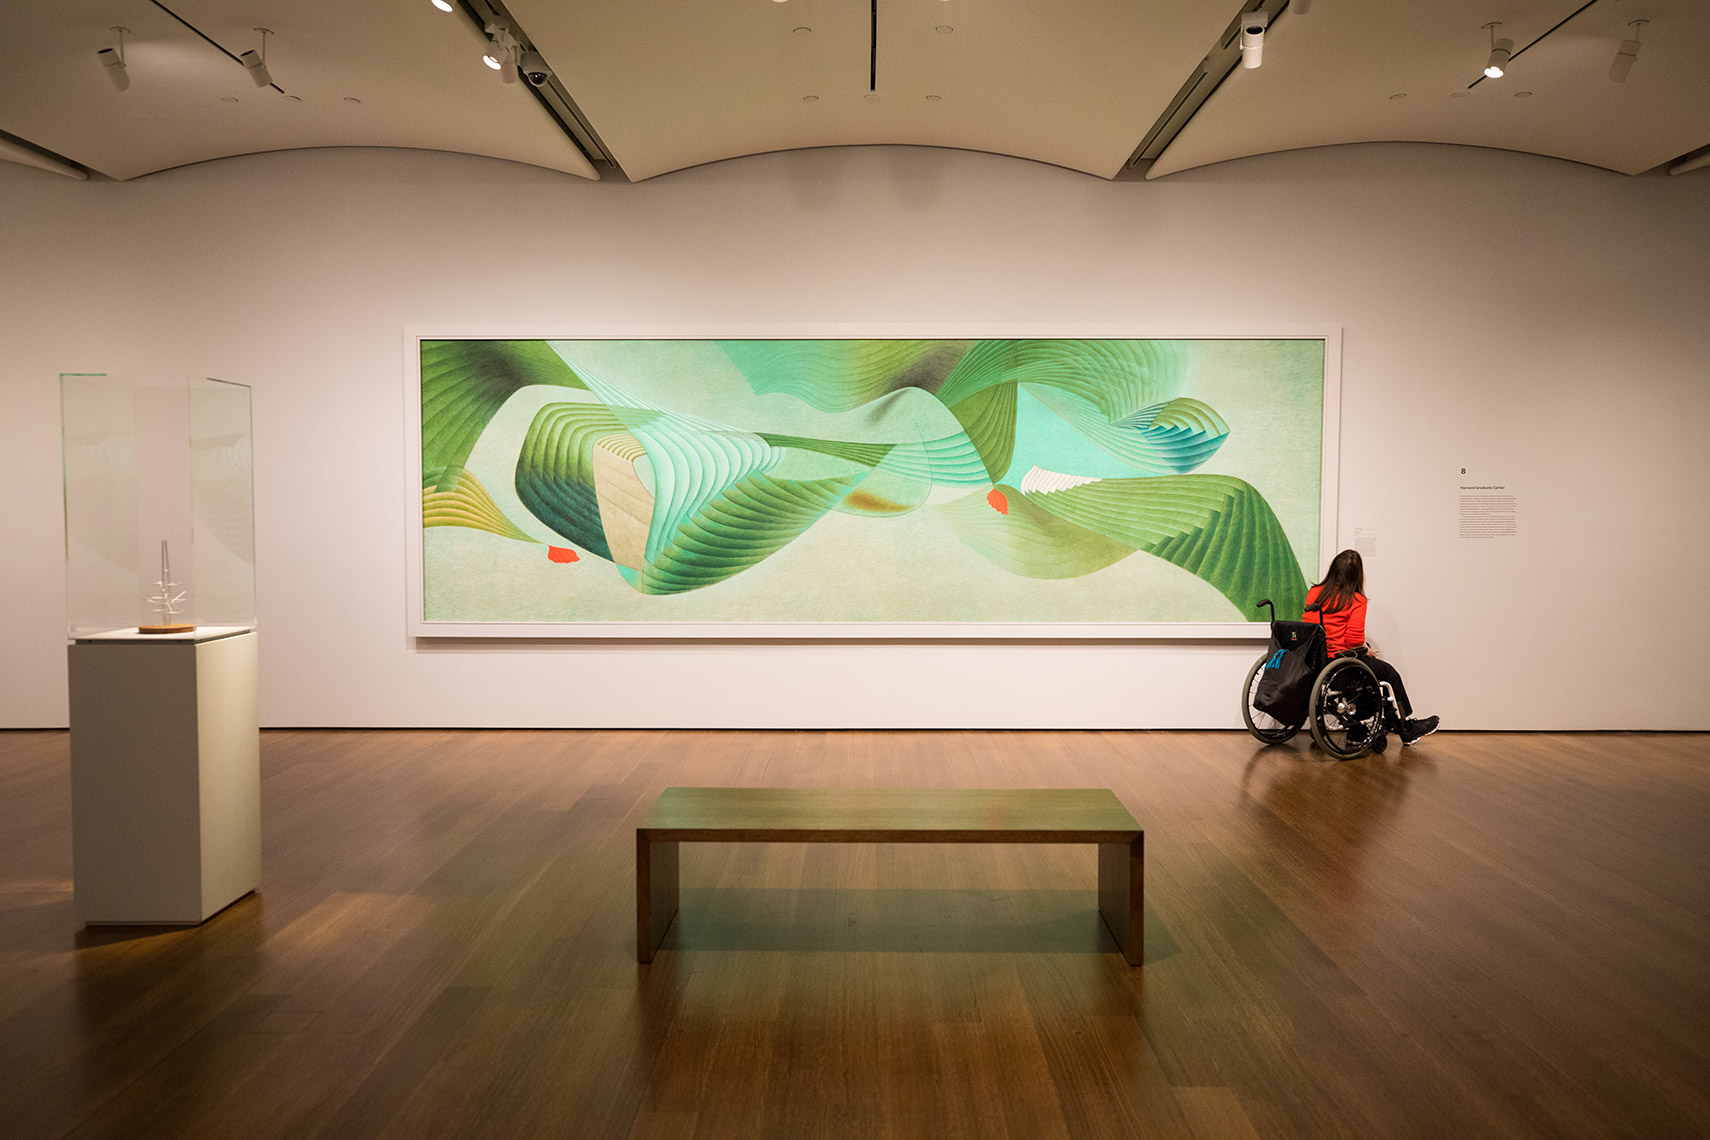 Museum visitor in a wheelchair views a green and red painting by Editorial Travel photographer